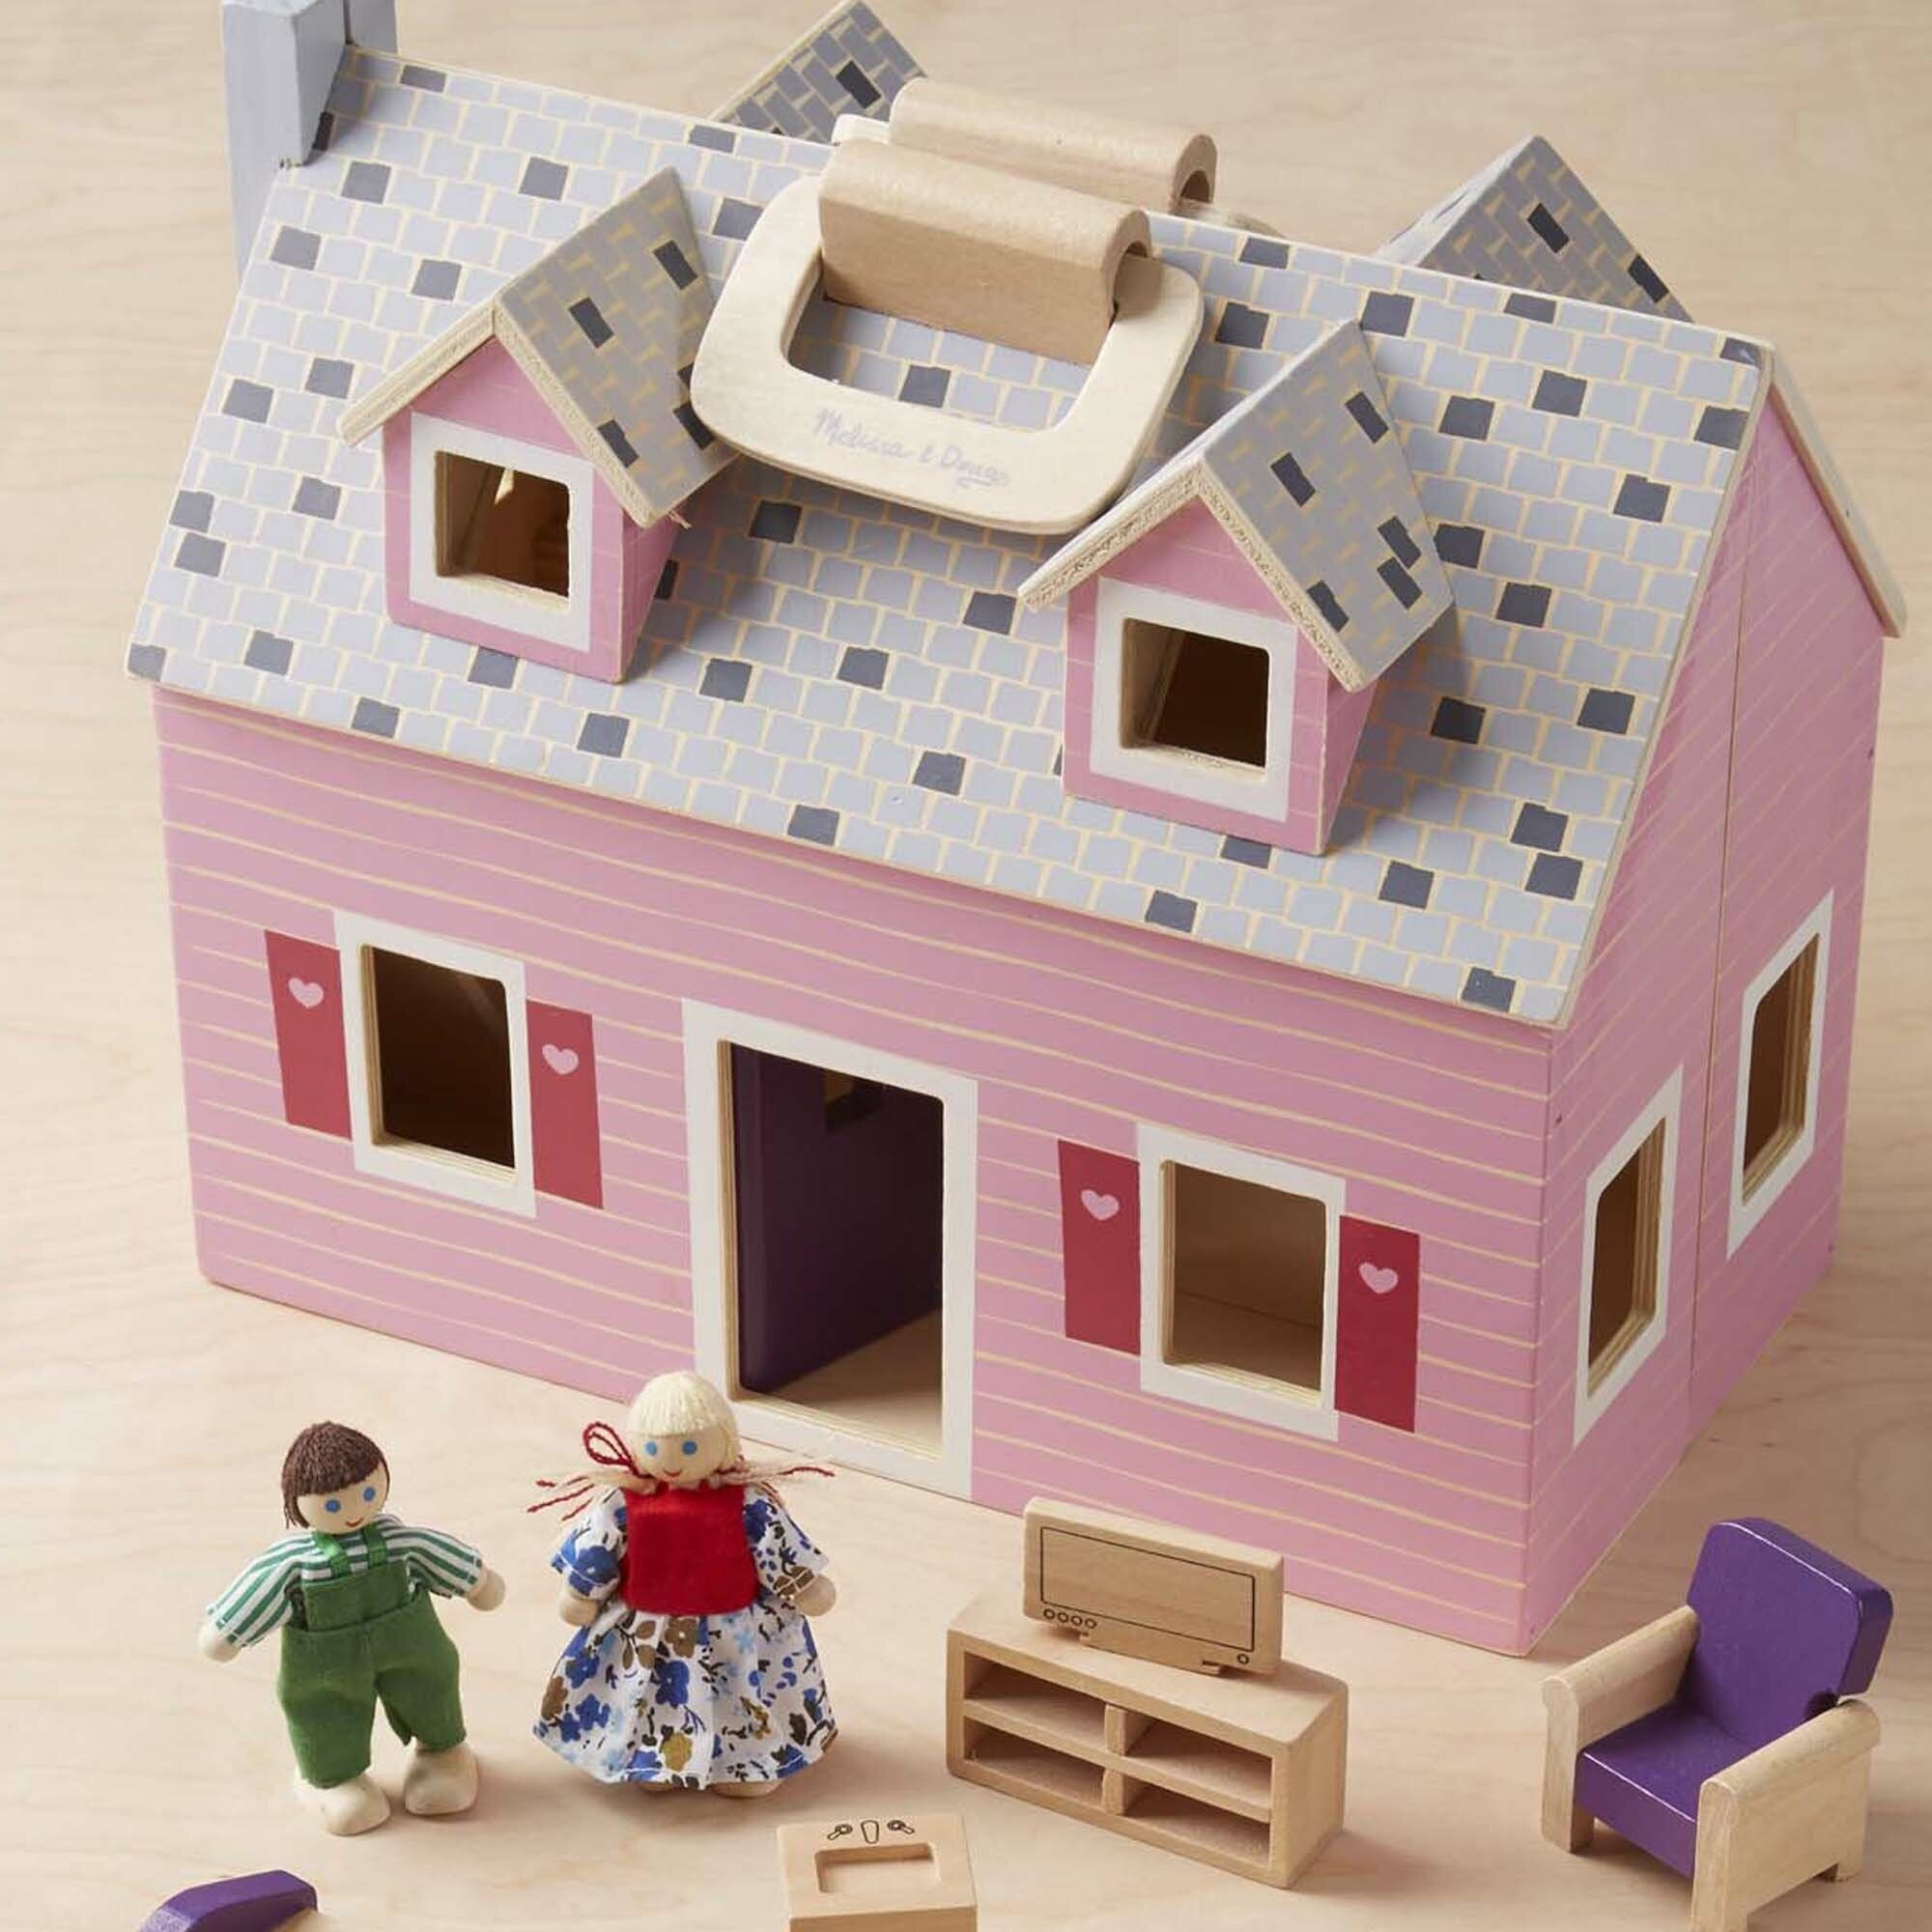 How To Choose A Dollhouse